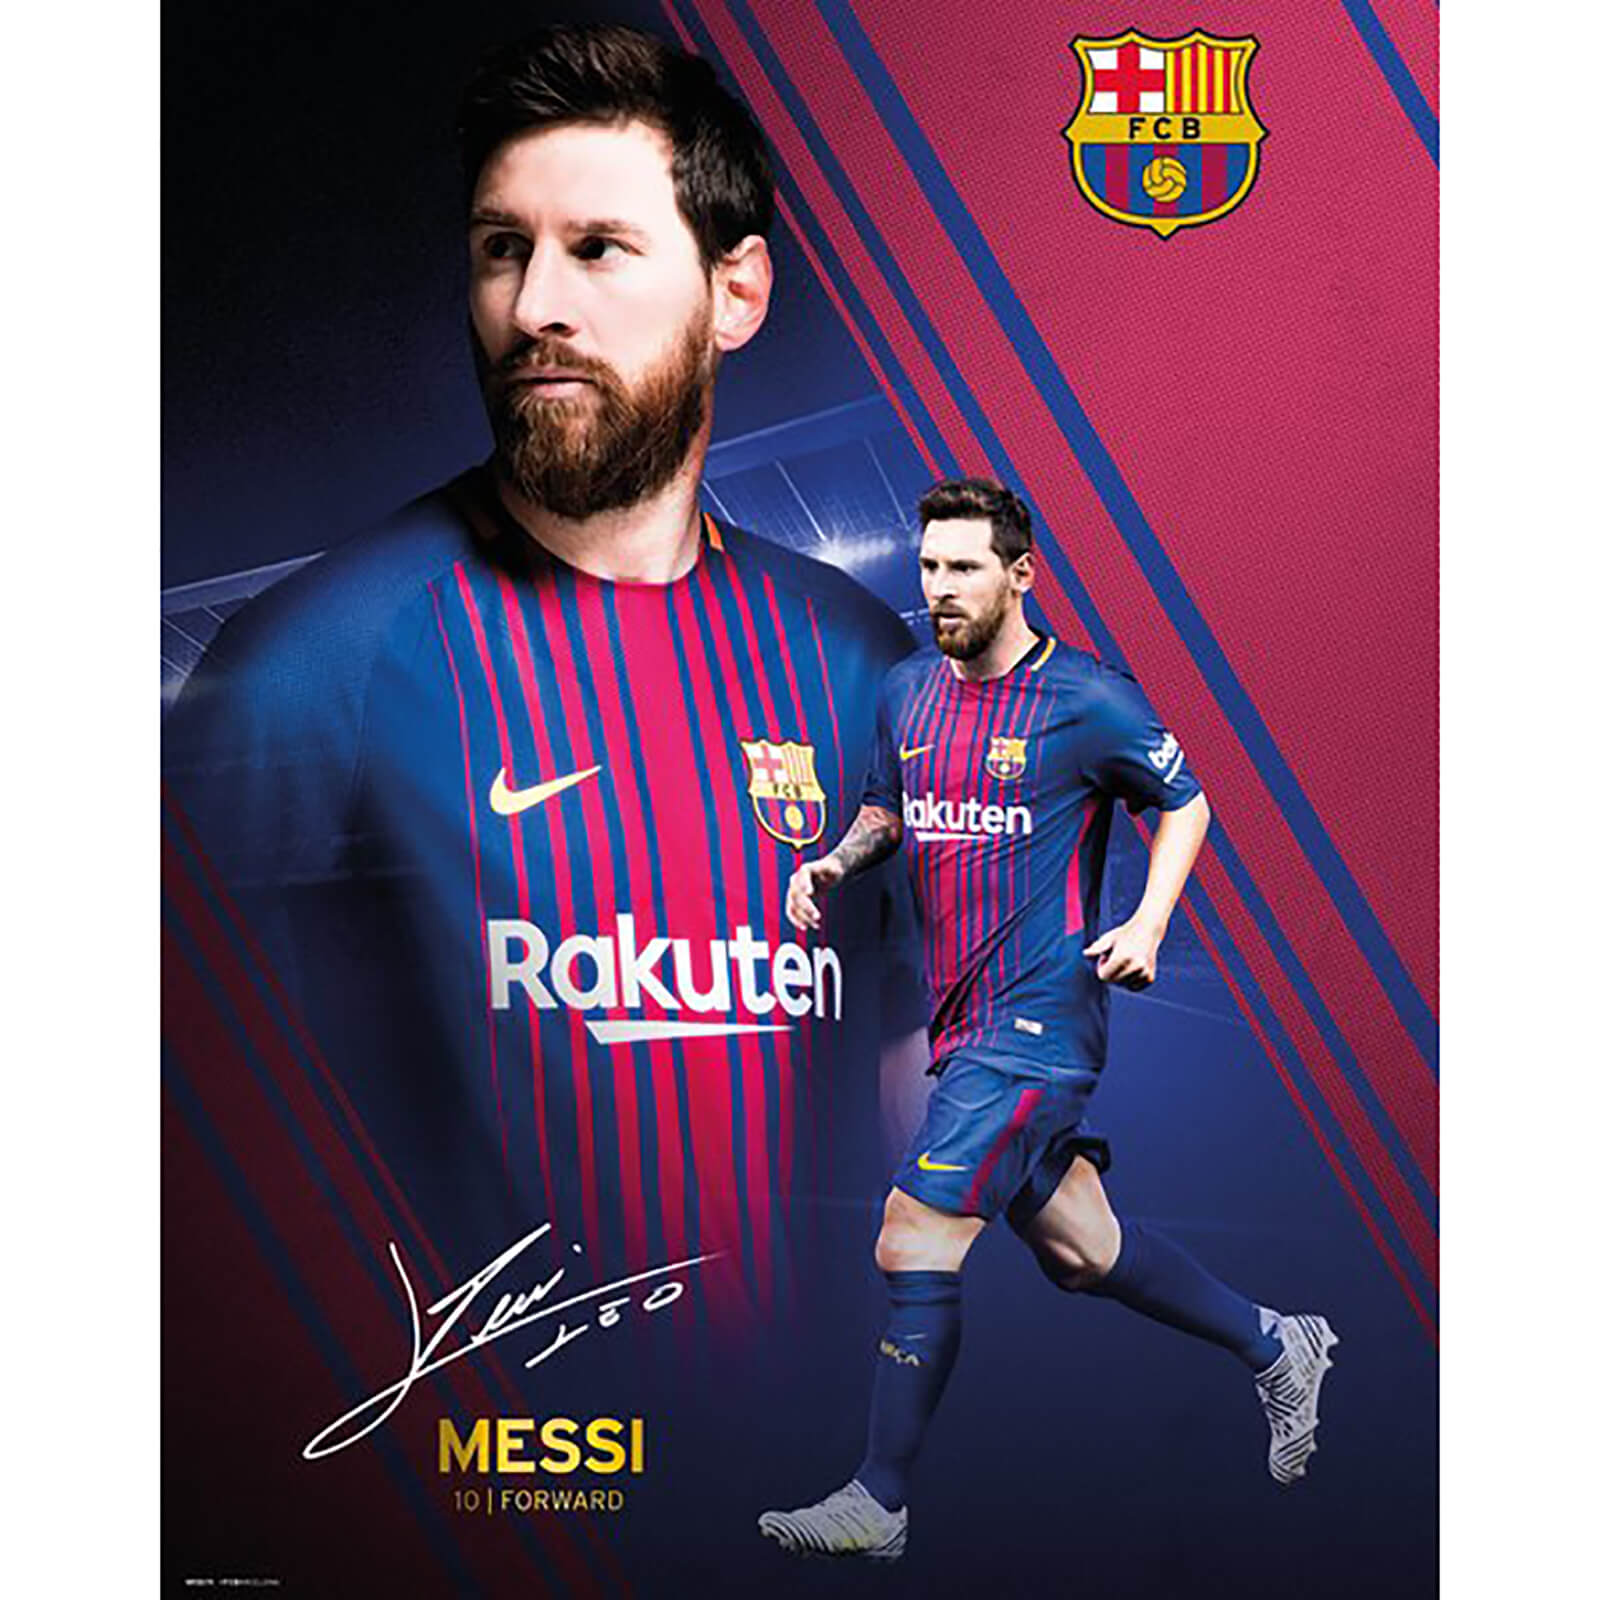 Barcelona Messi Collage 17/18 Mini Poster 40 x 50cm